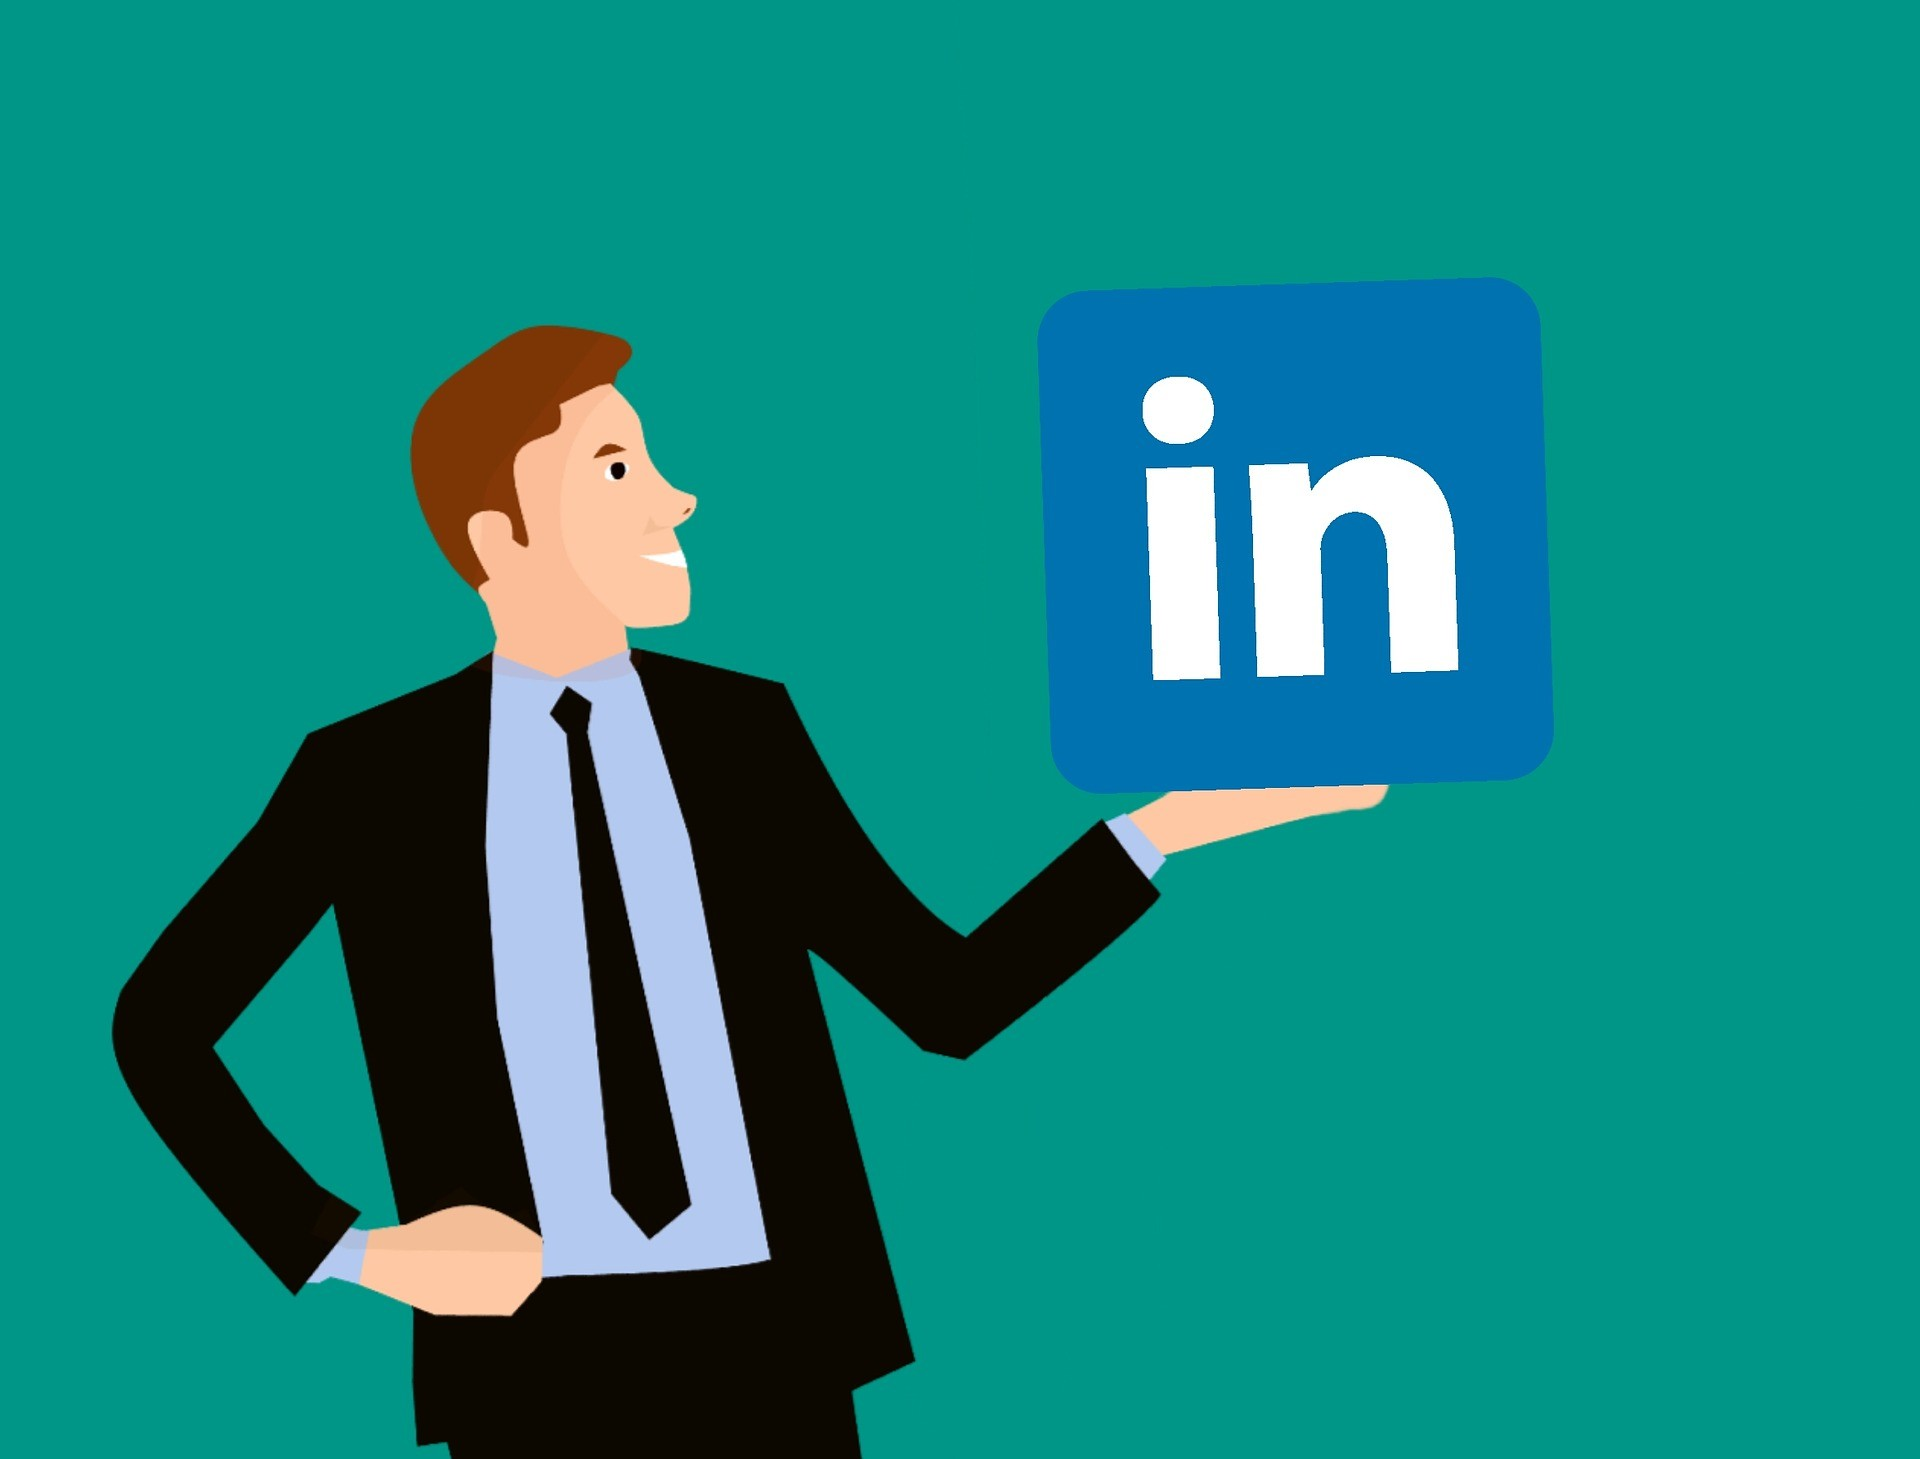 Is There a Way To Manually Move Saved Jobs to Applied Jobs or Make a Sub-folder on Linkedin?